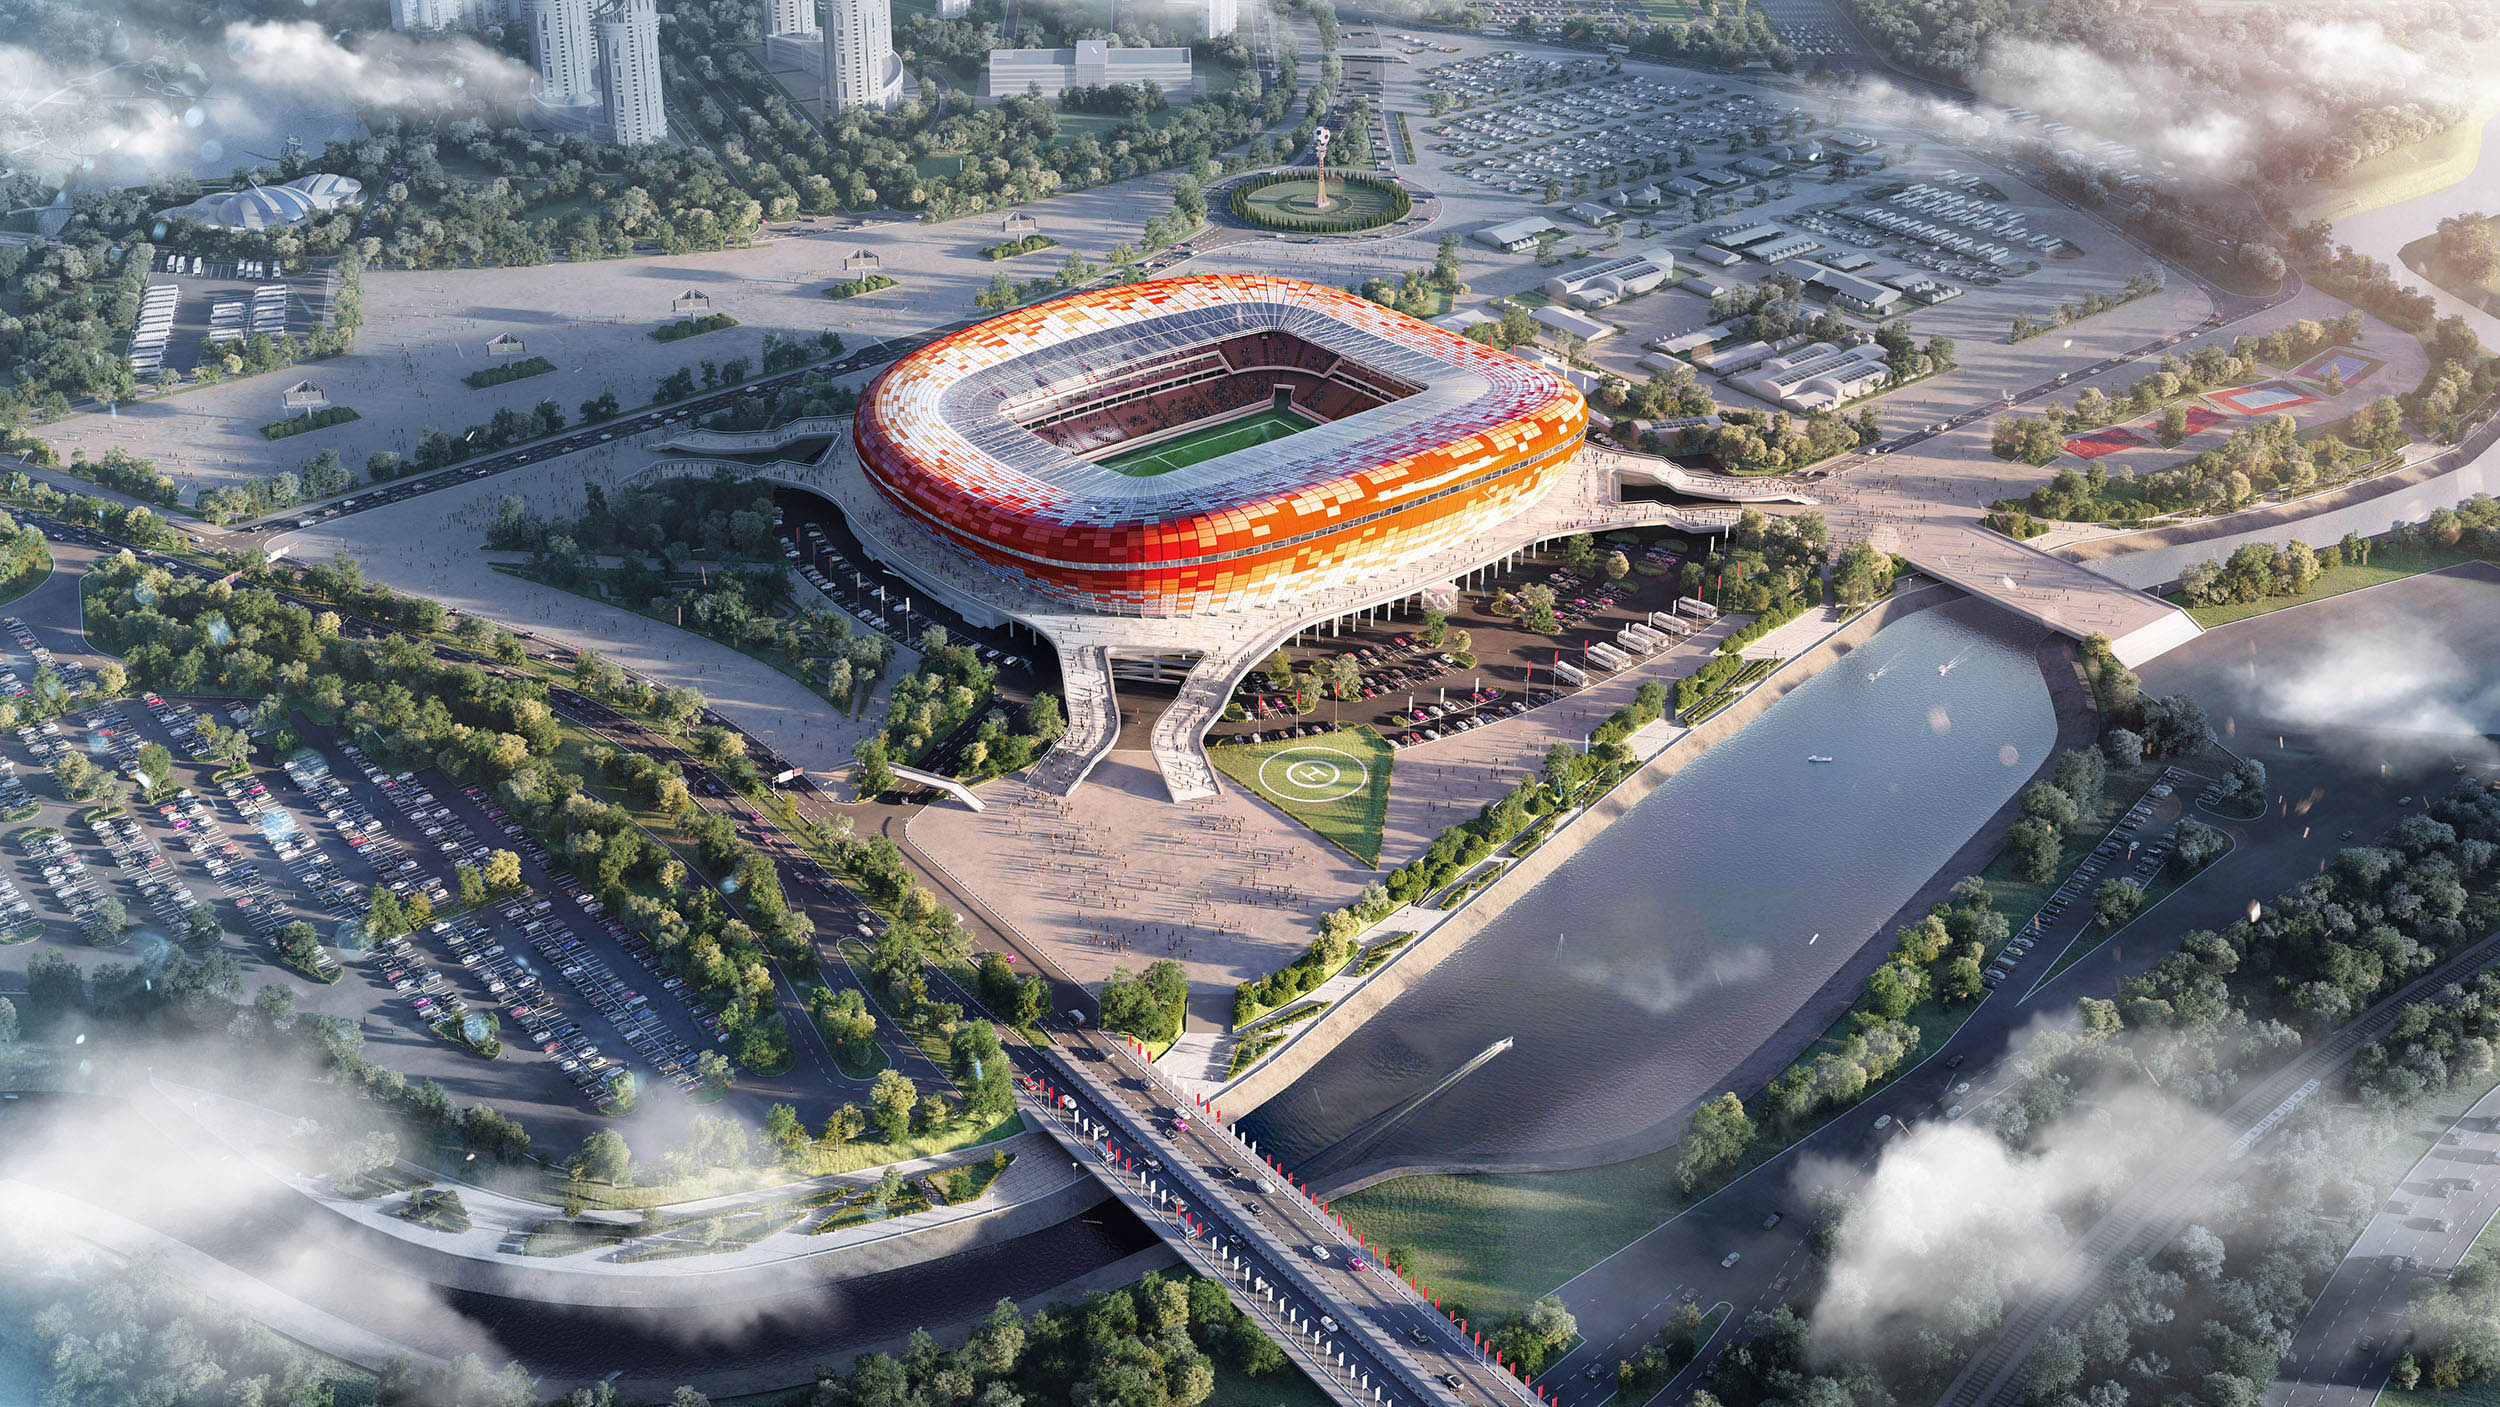 FIFA 2018 Stadium | 3D visualization